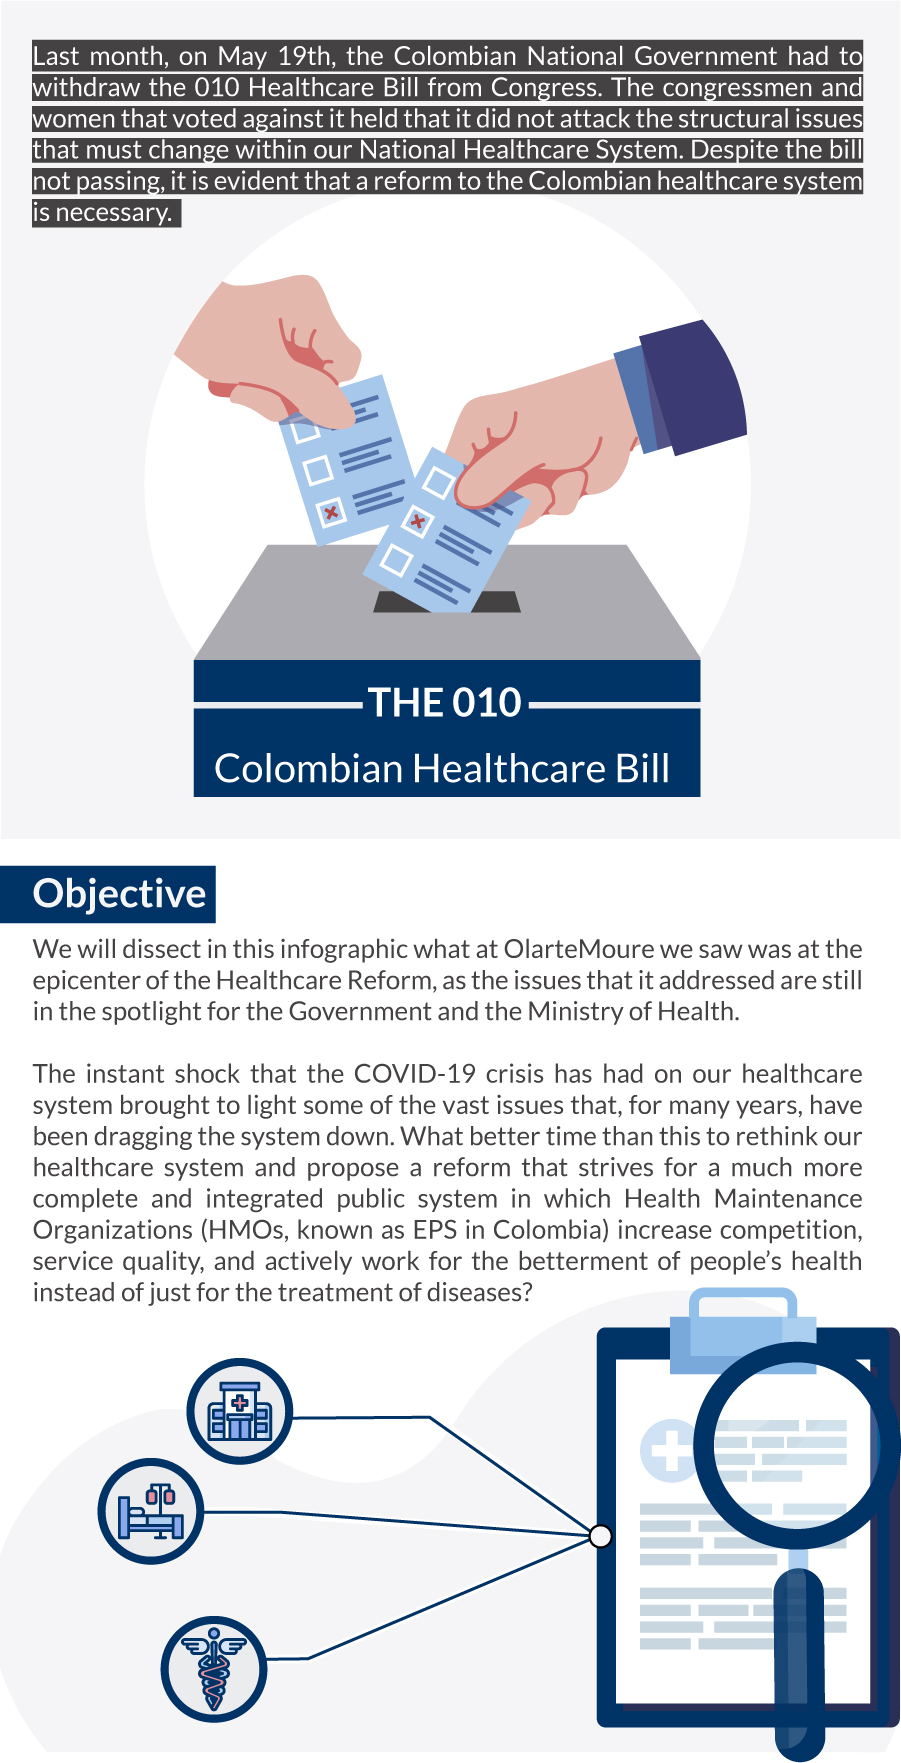 what happened last month in the colombian national government regarding the healthcare bill